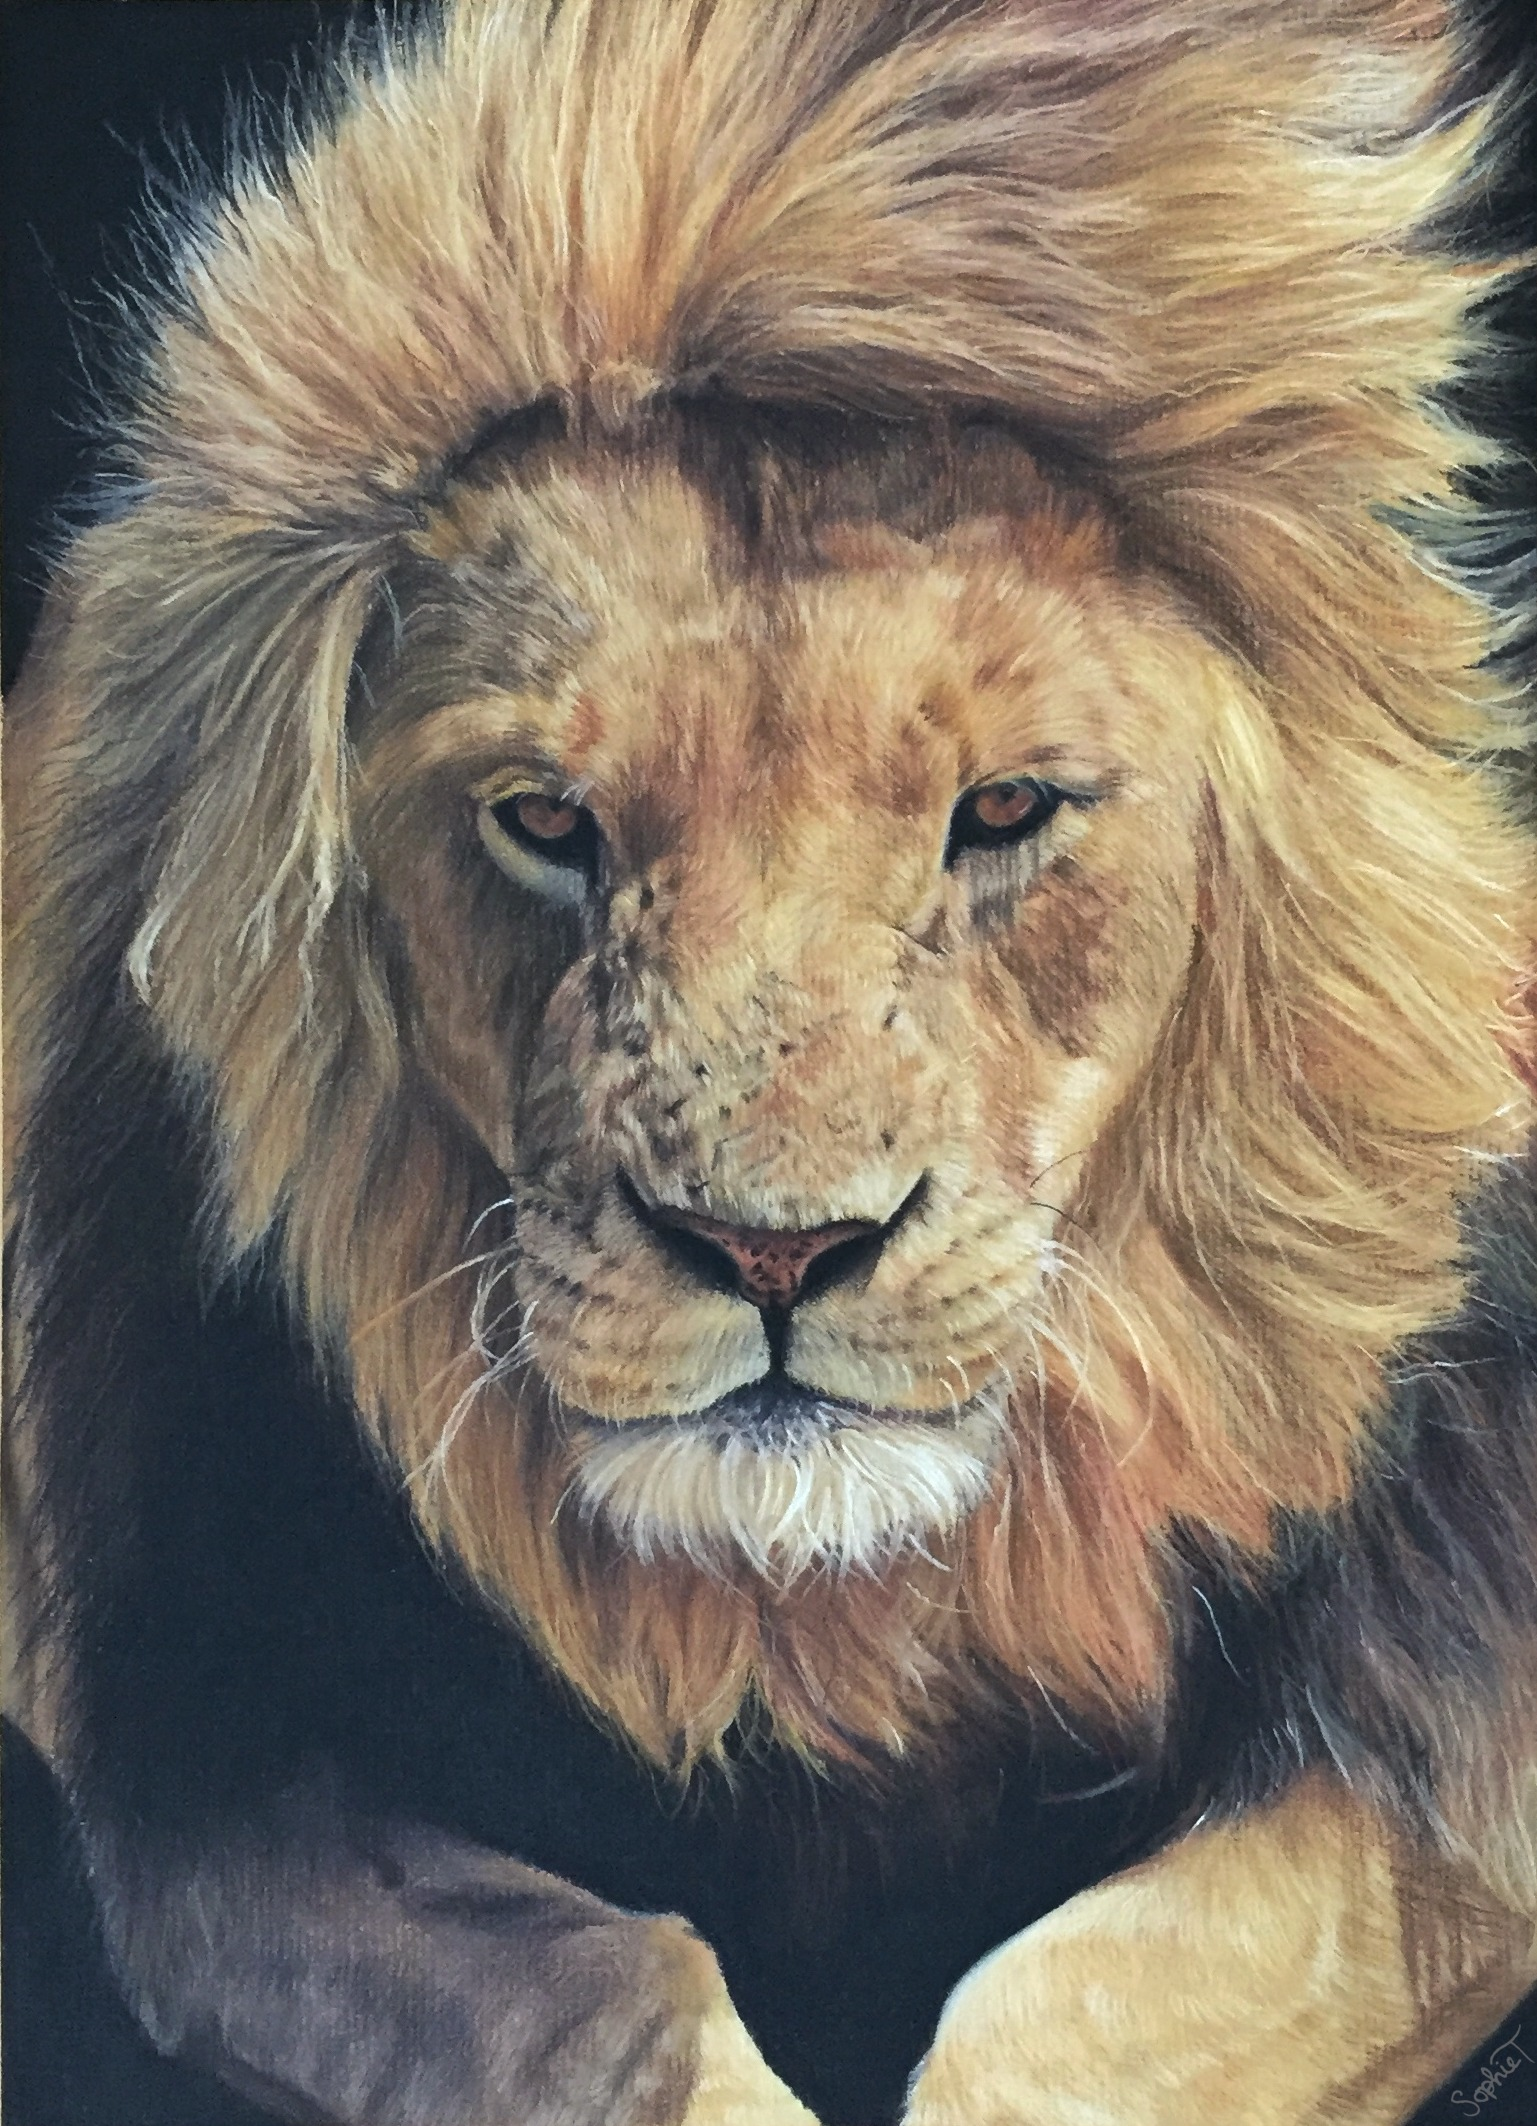 Aslan (from the Chronicles of Narnia)